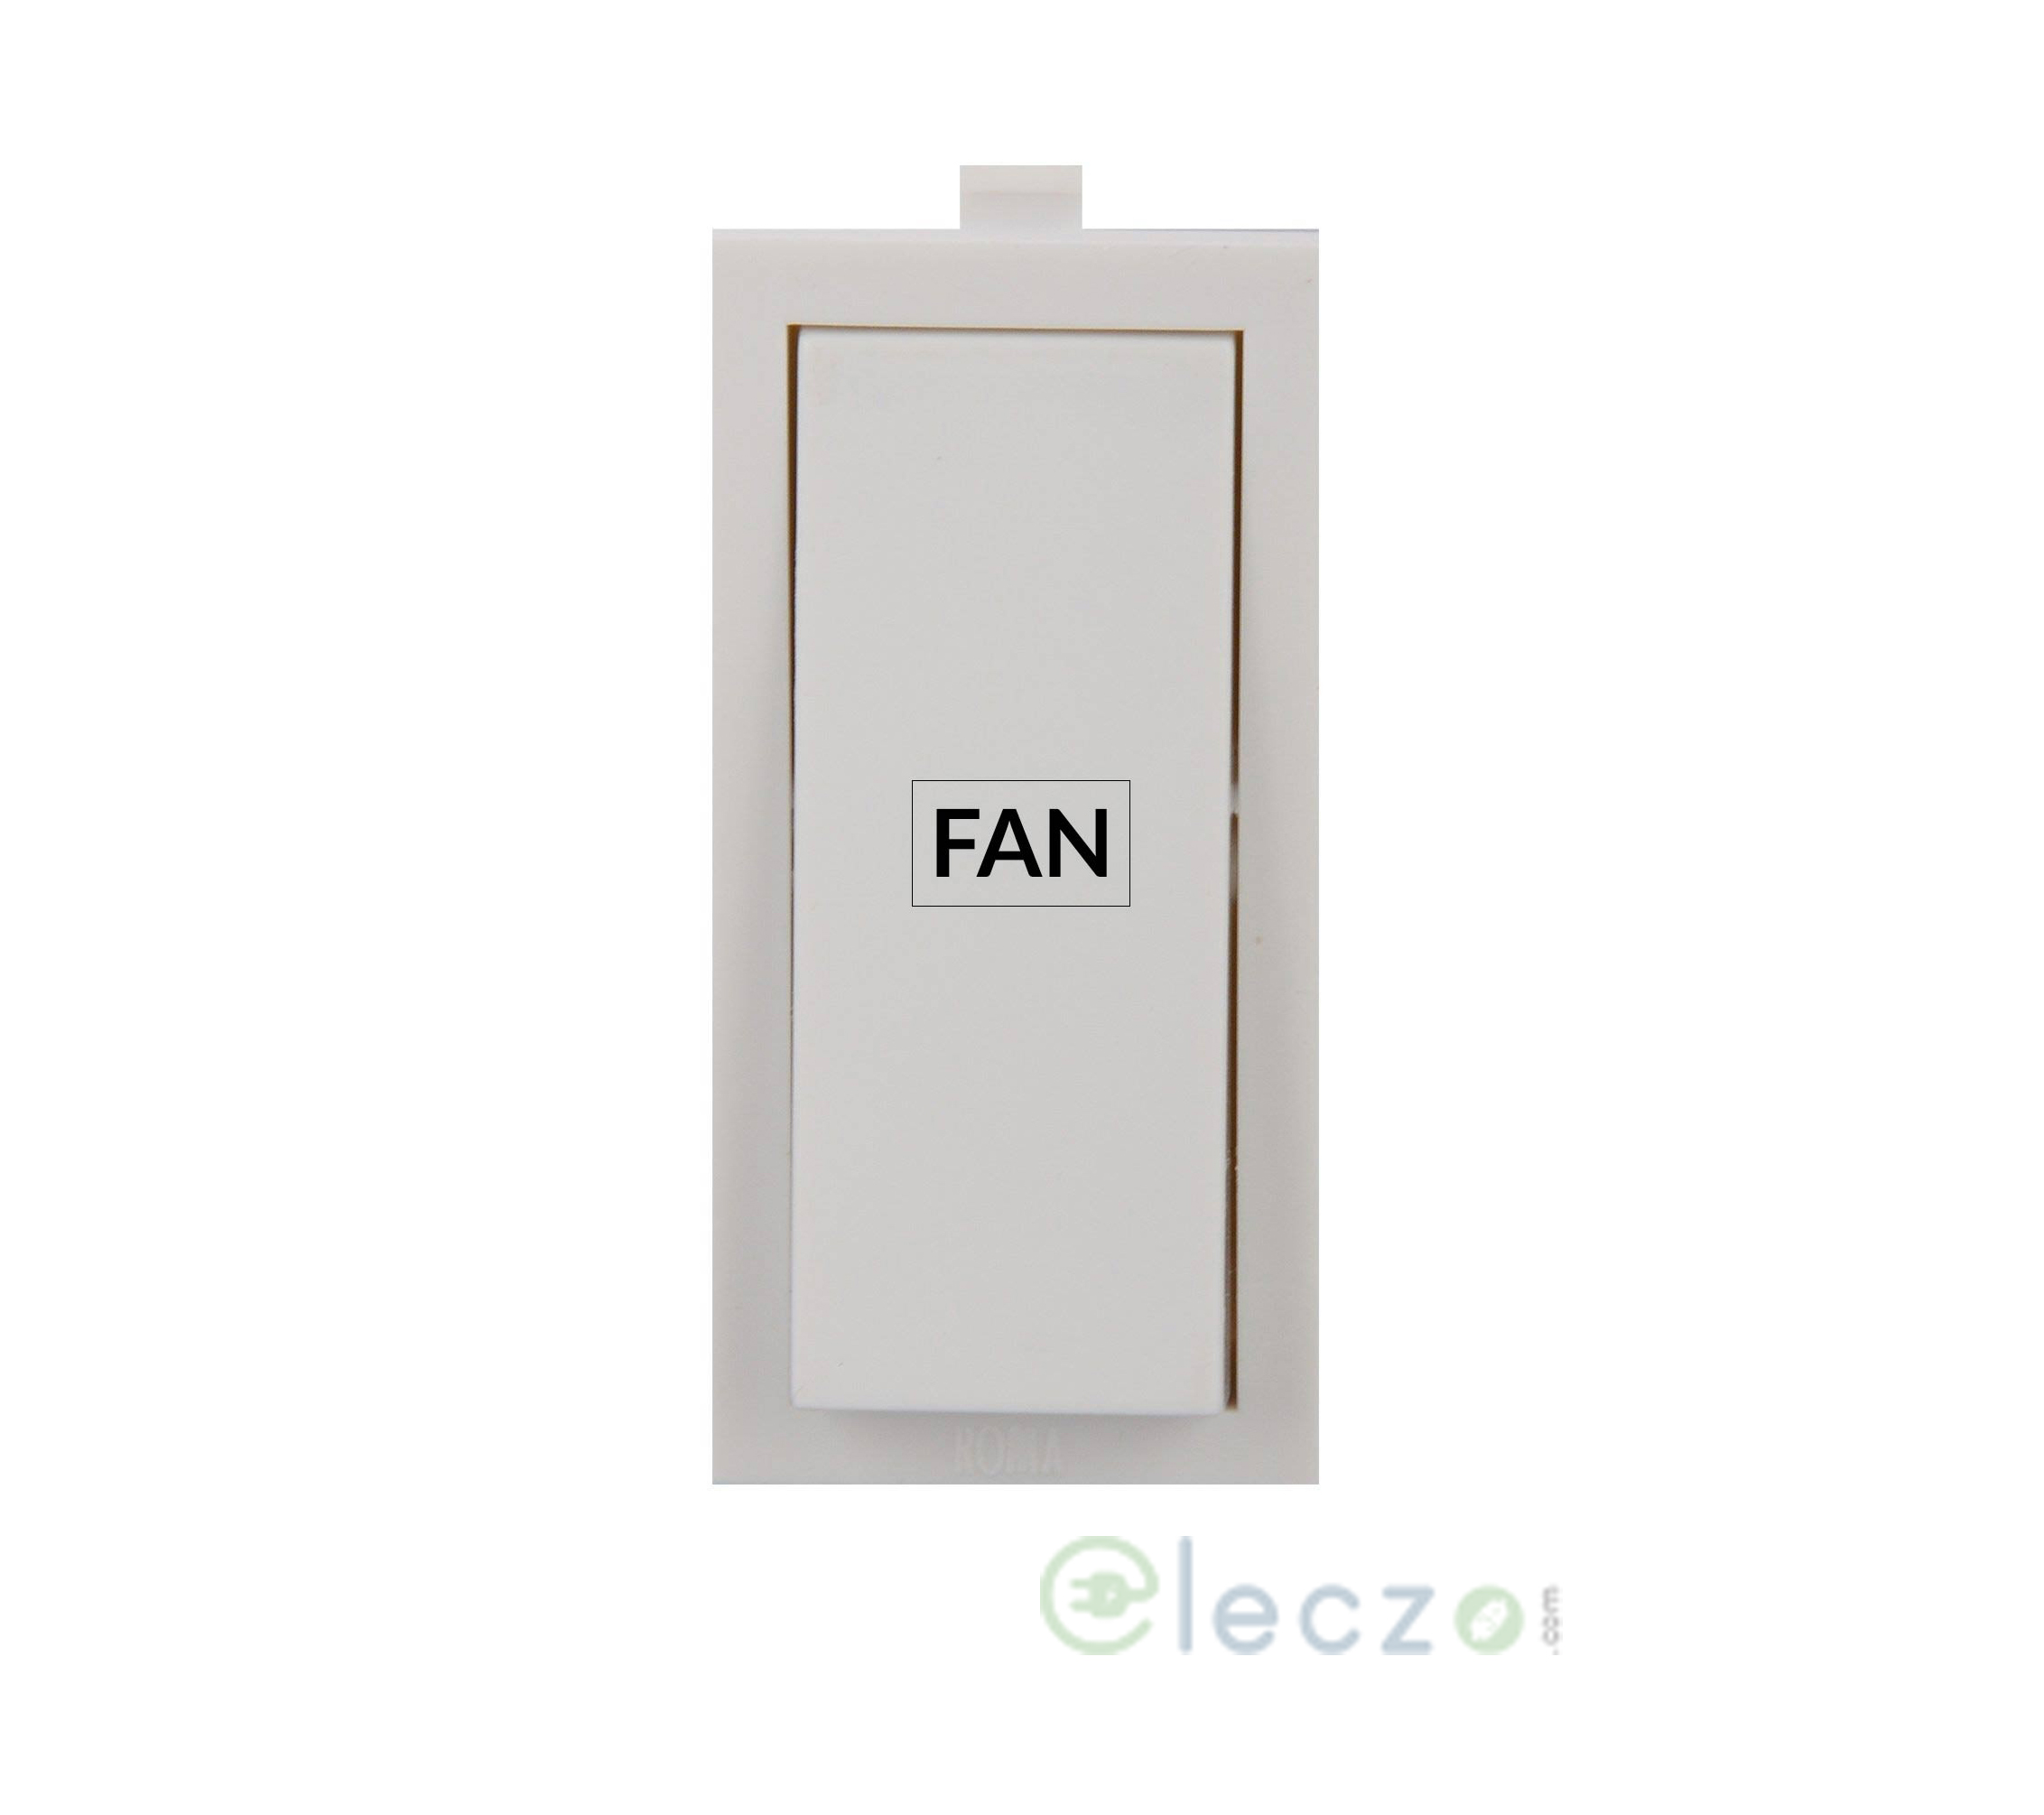 Anchor Roma Switch With Fan Mark 10 A, White, 1 Module, 1 Way